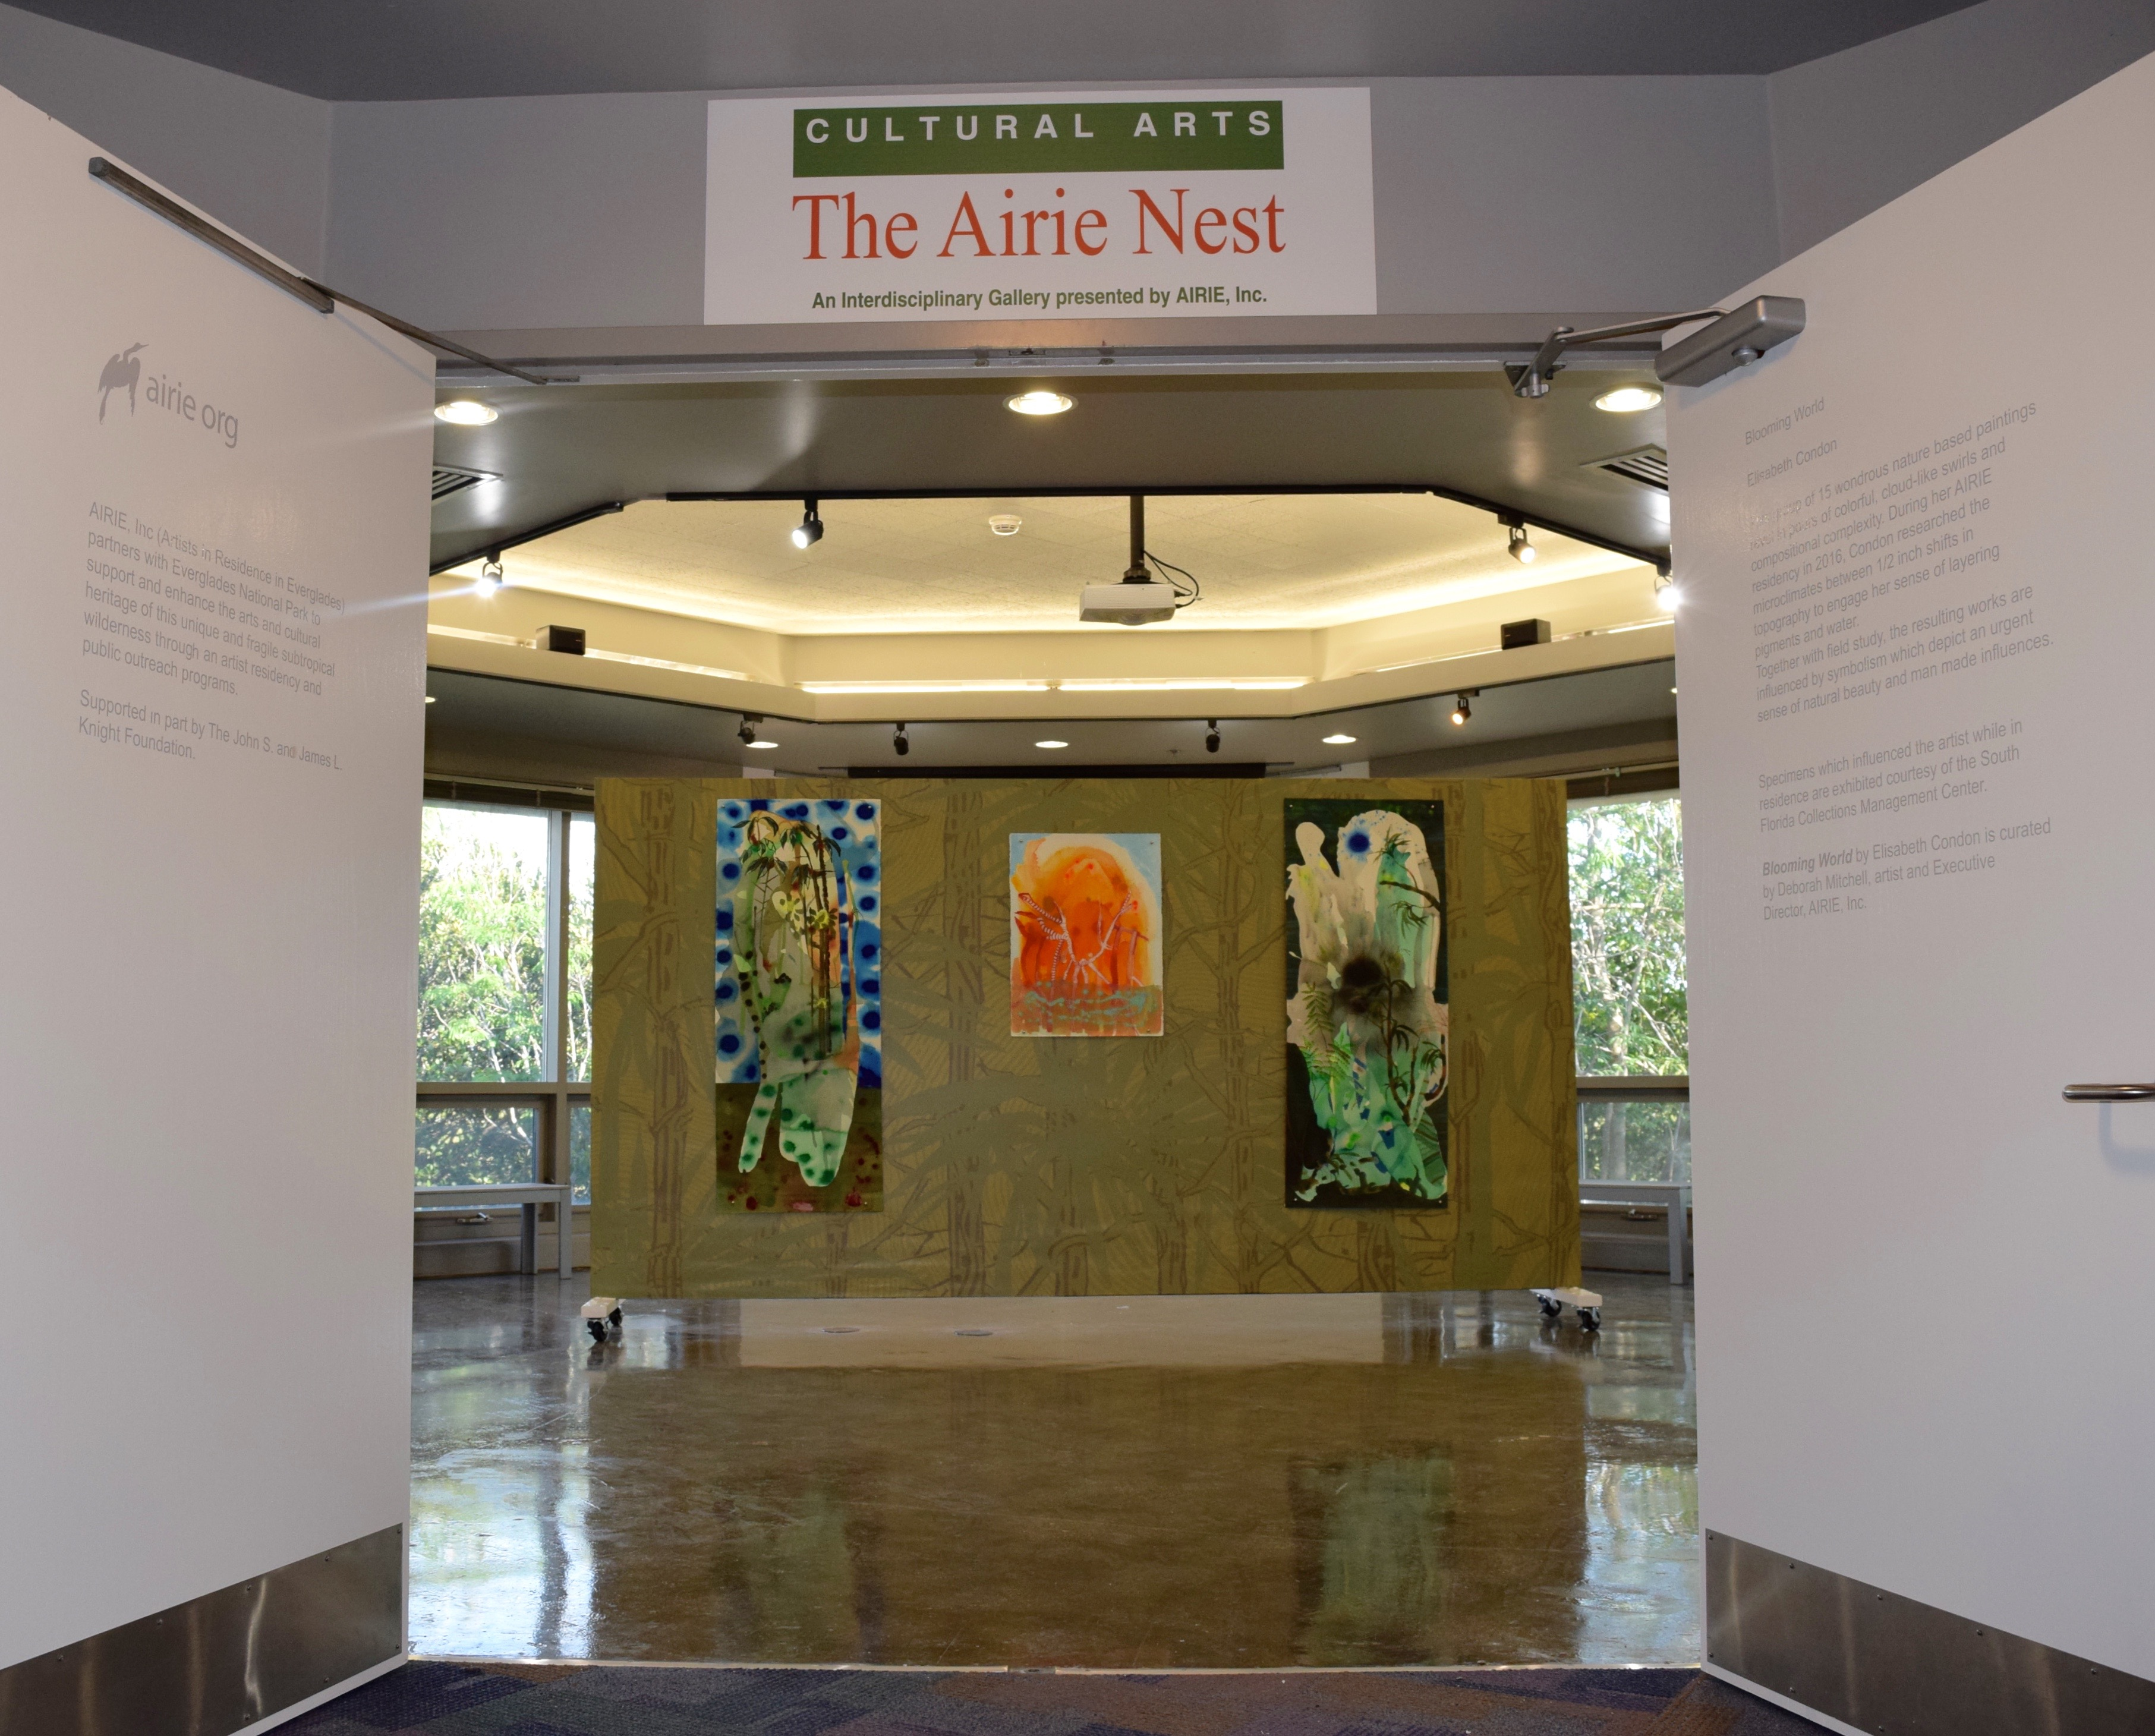 entrance to the AIRIE Nest art gallery